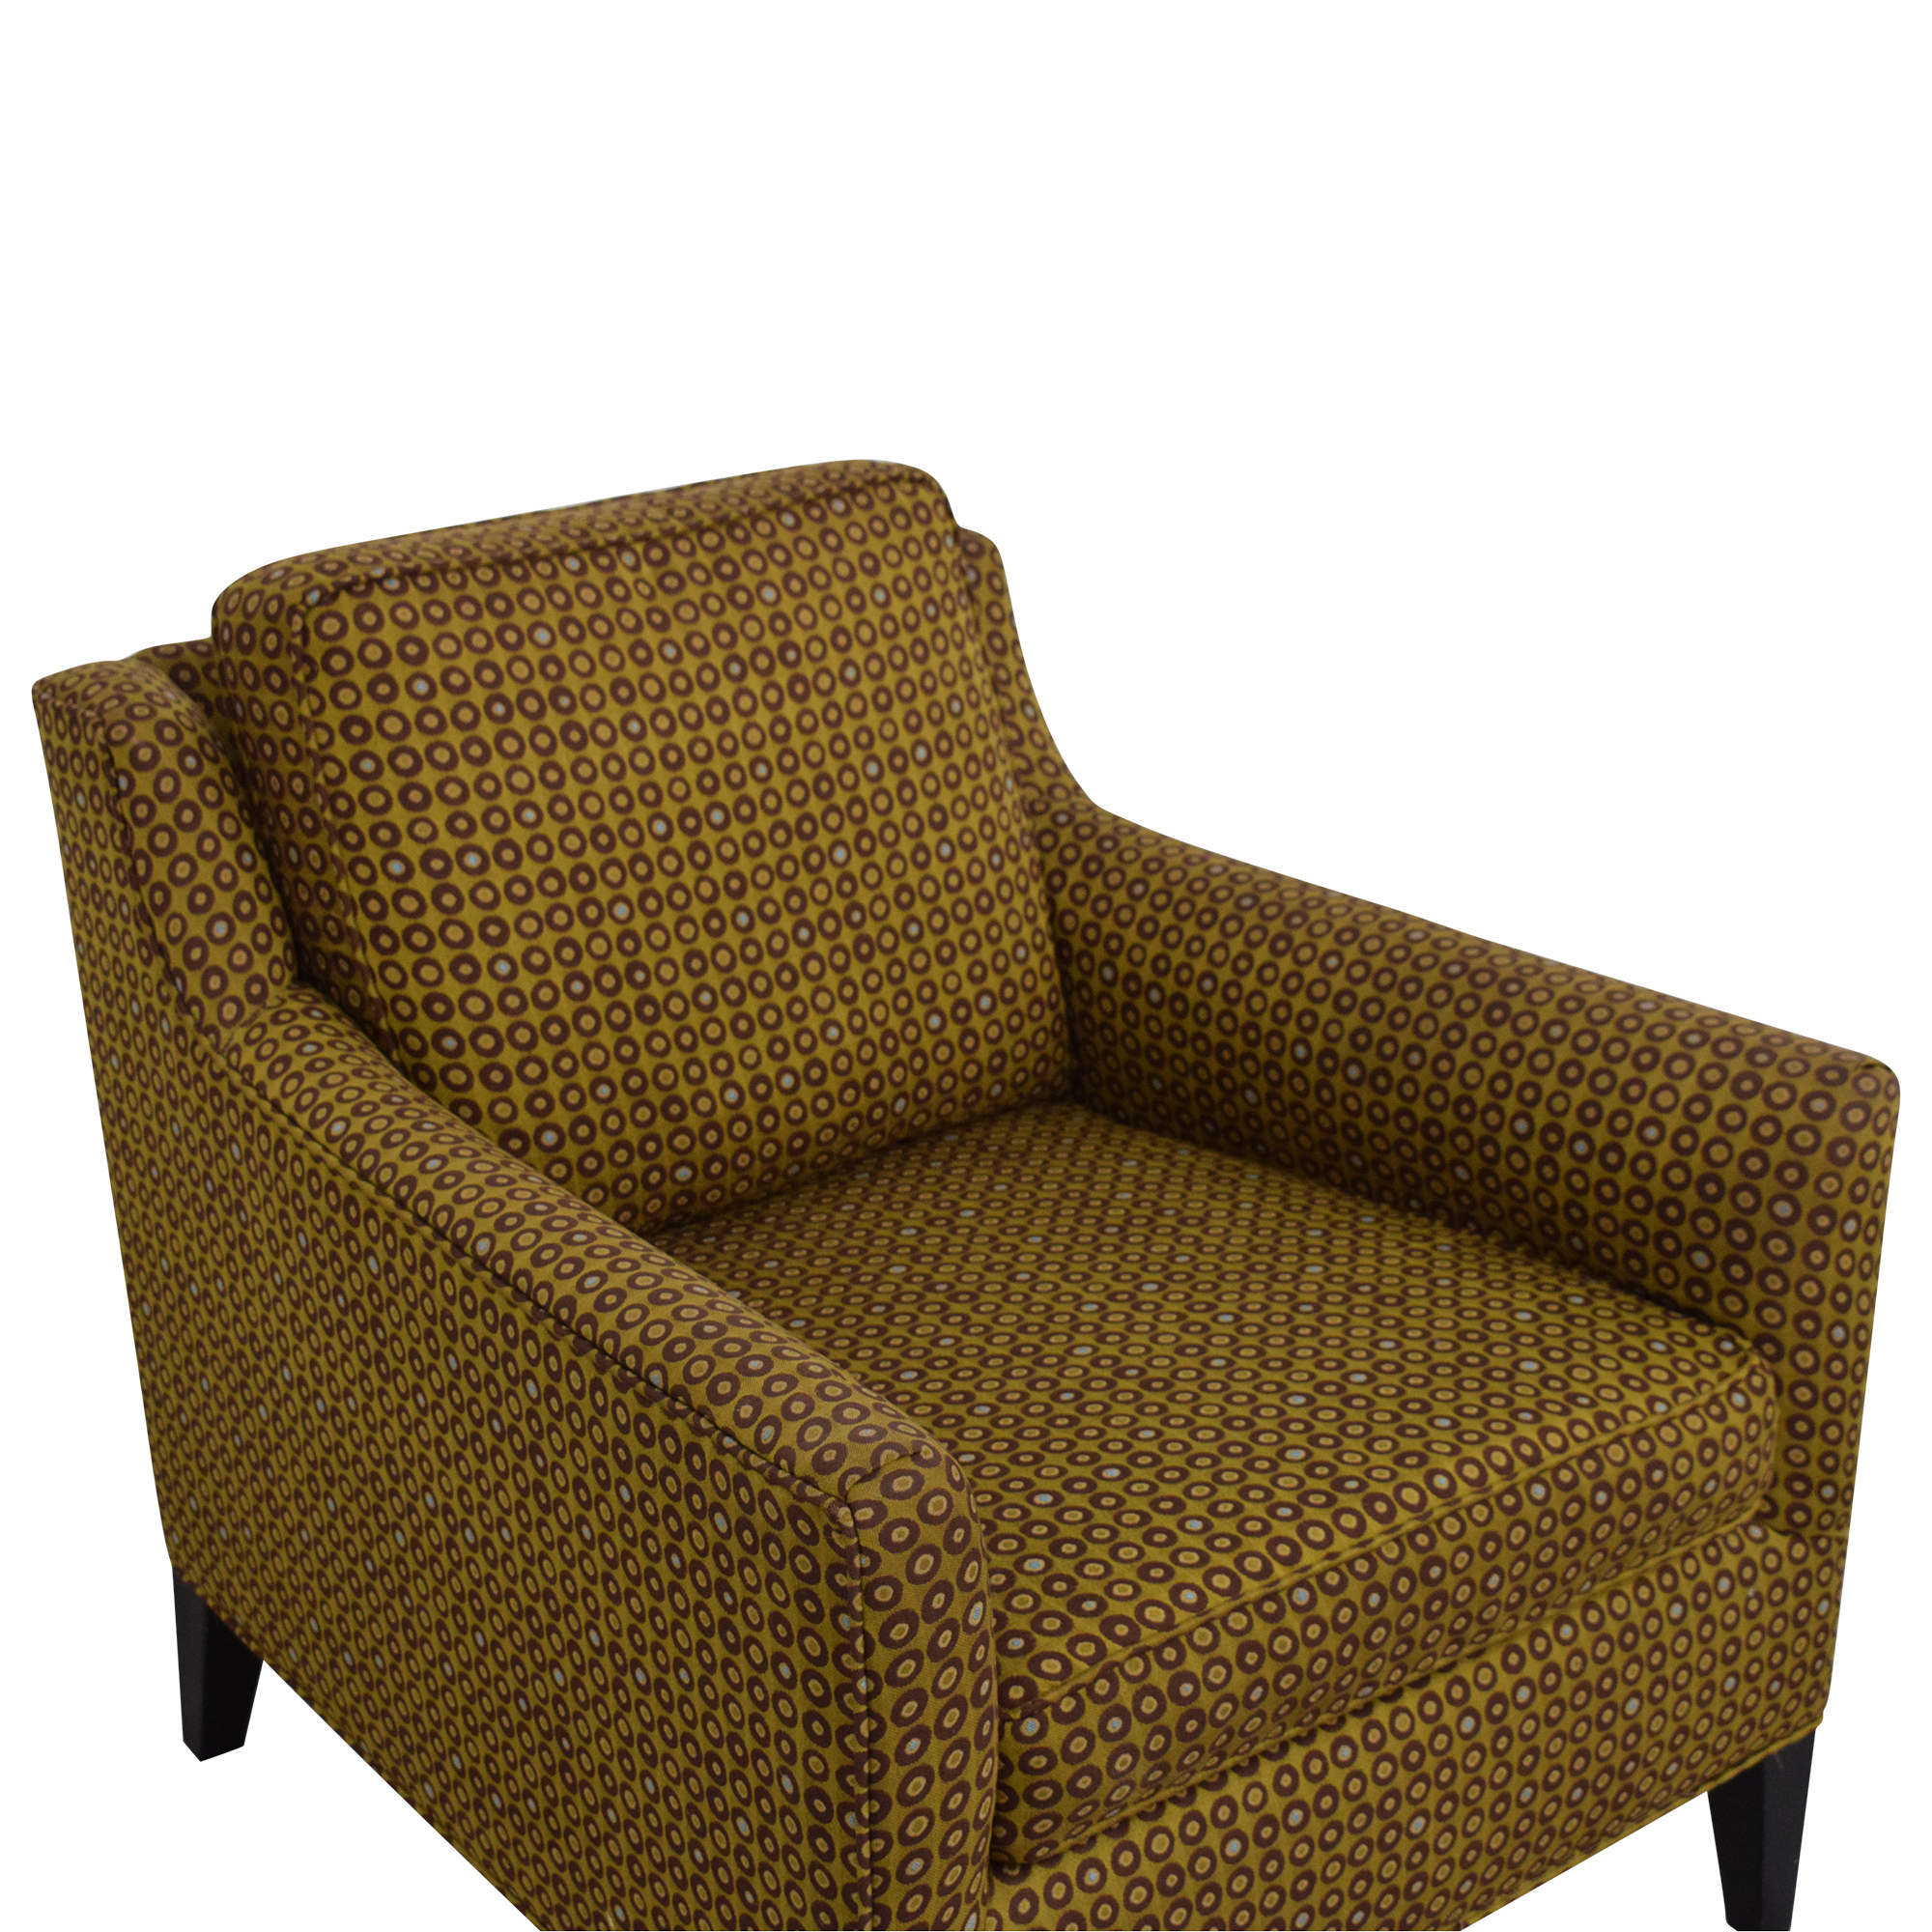 Mitchell Gold + Bob Williams Mitchell Gold + Bob Williams Club Chair price